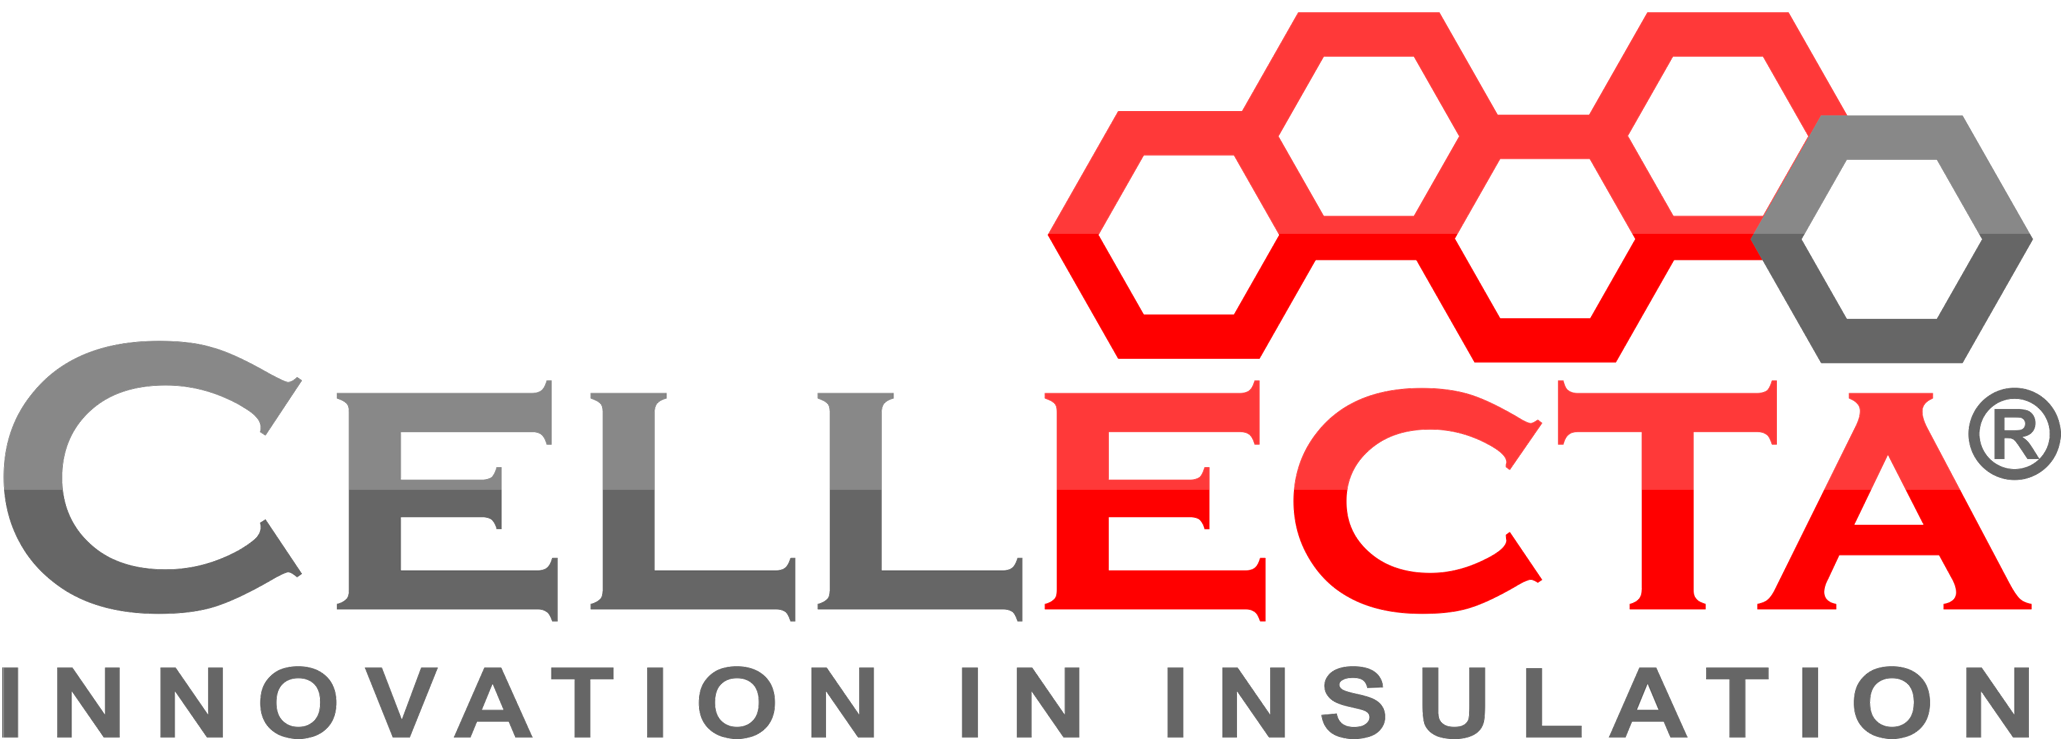 Cellecta Logo